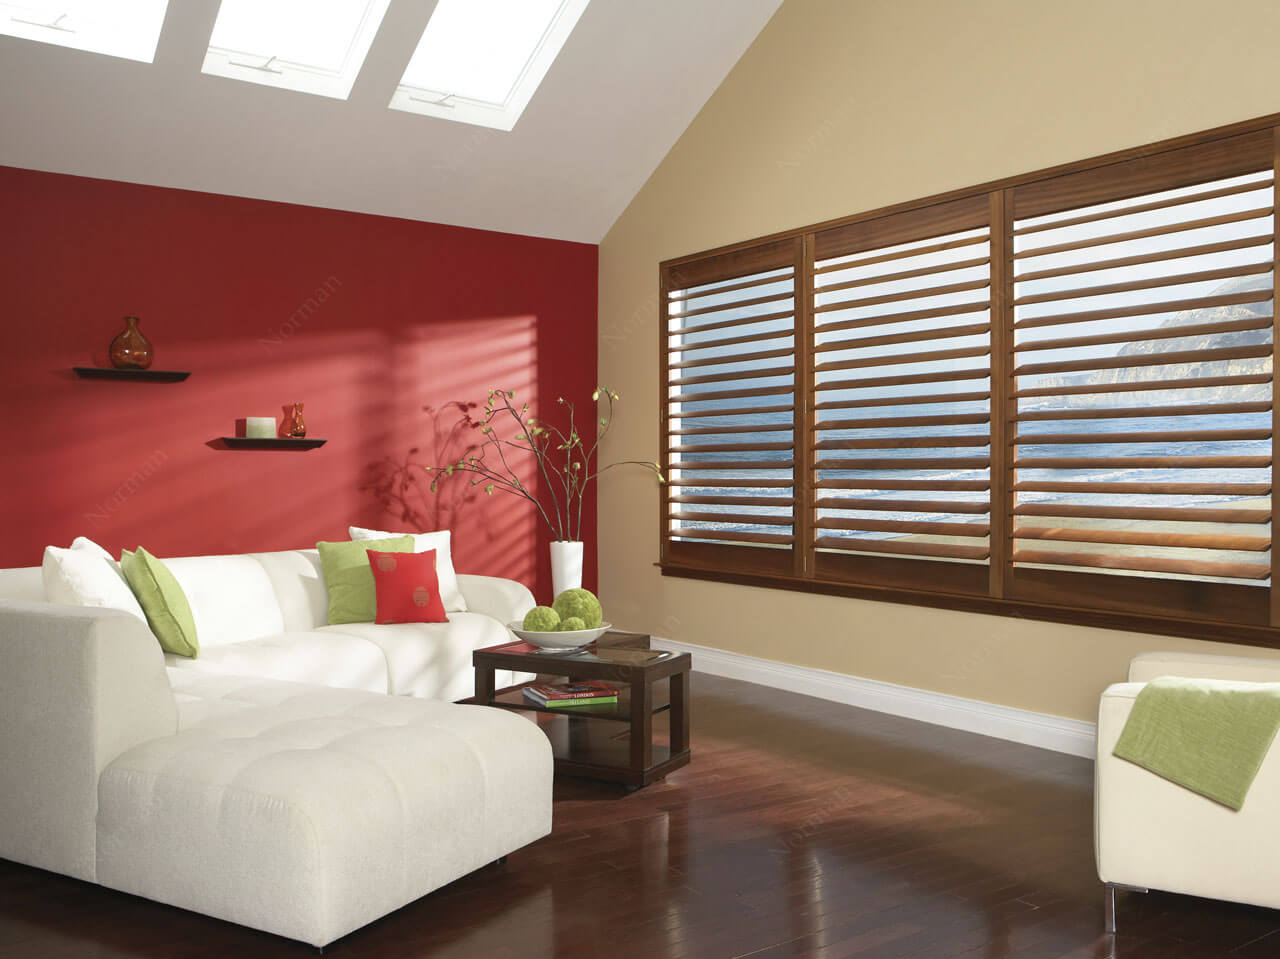 Choosing the Right Blinds for Your Home - Living Room